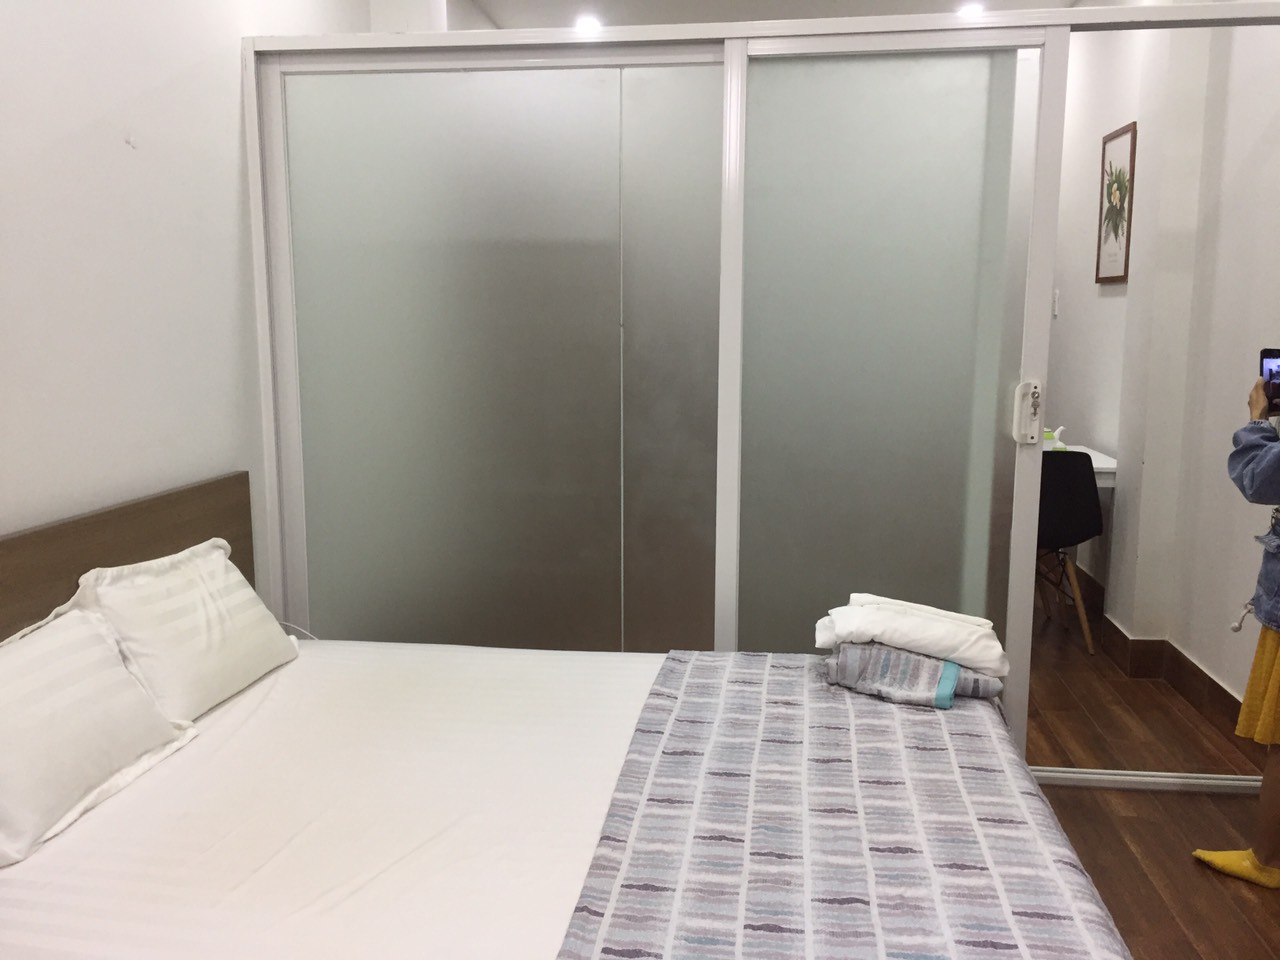 serviced apartment for rent in binh thanh district hcmc serviced apartment for rent in binh thanh district hcmc BT99138 (2)